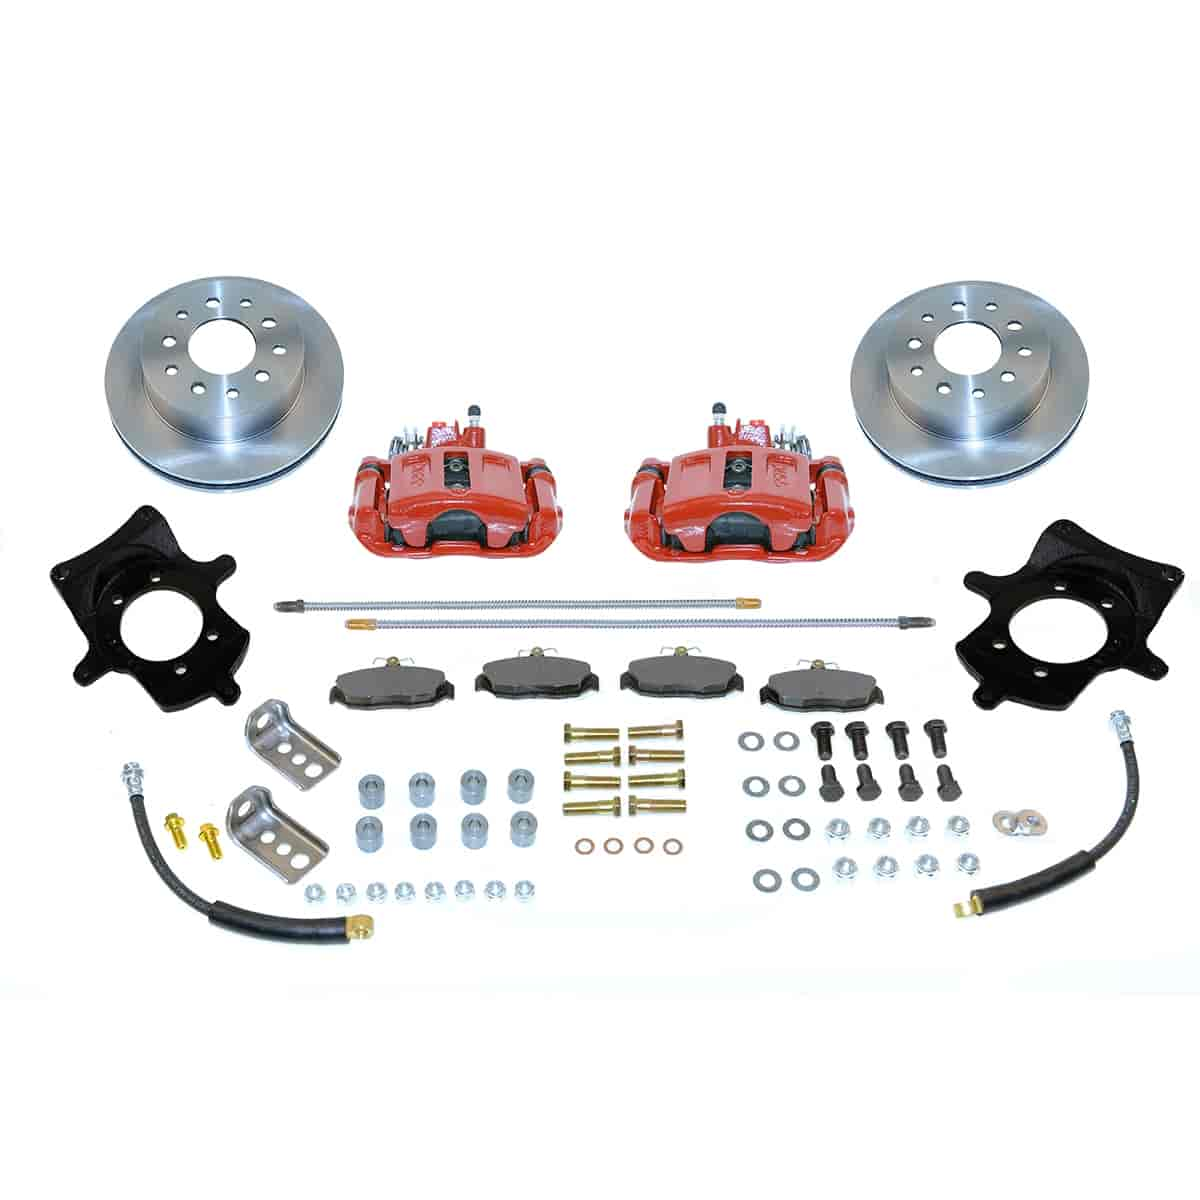 Stainless Steel Brakes A114R - Stainless Steel Brakes Single Piston Rear Drum to Disc Brake Conversion Kits